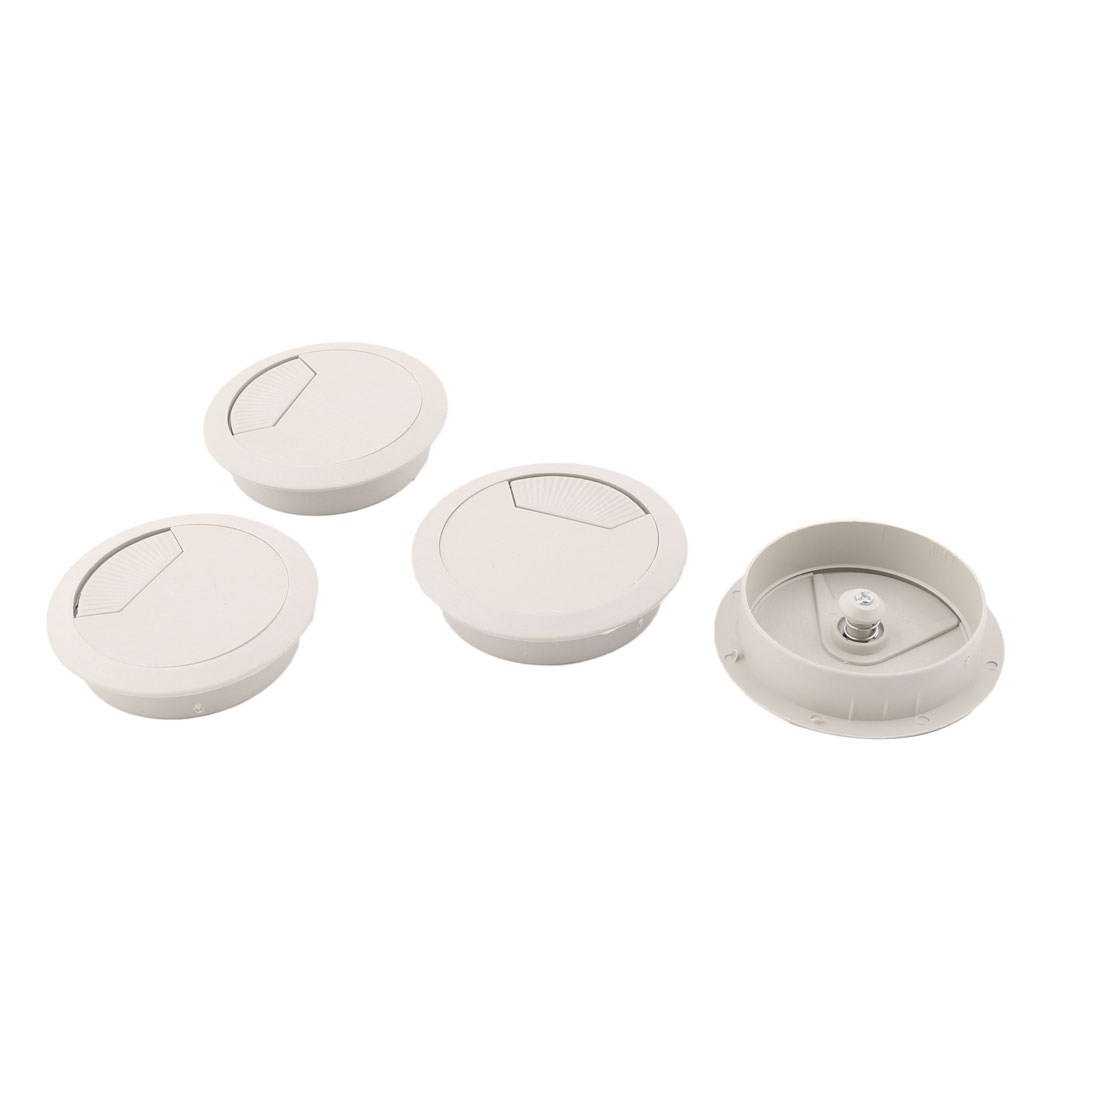 Computer Desktop Plastic Round Wire Outlet Grommet Cable Hole Cover Off White 4 PCS